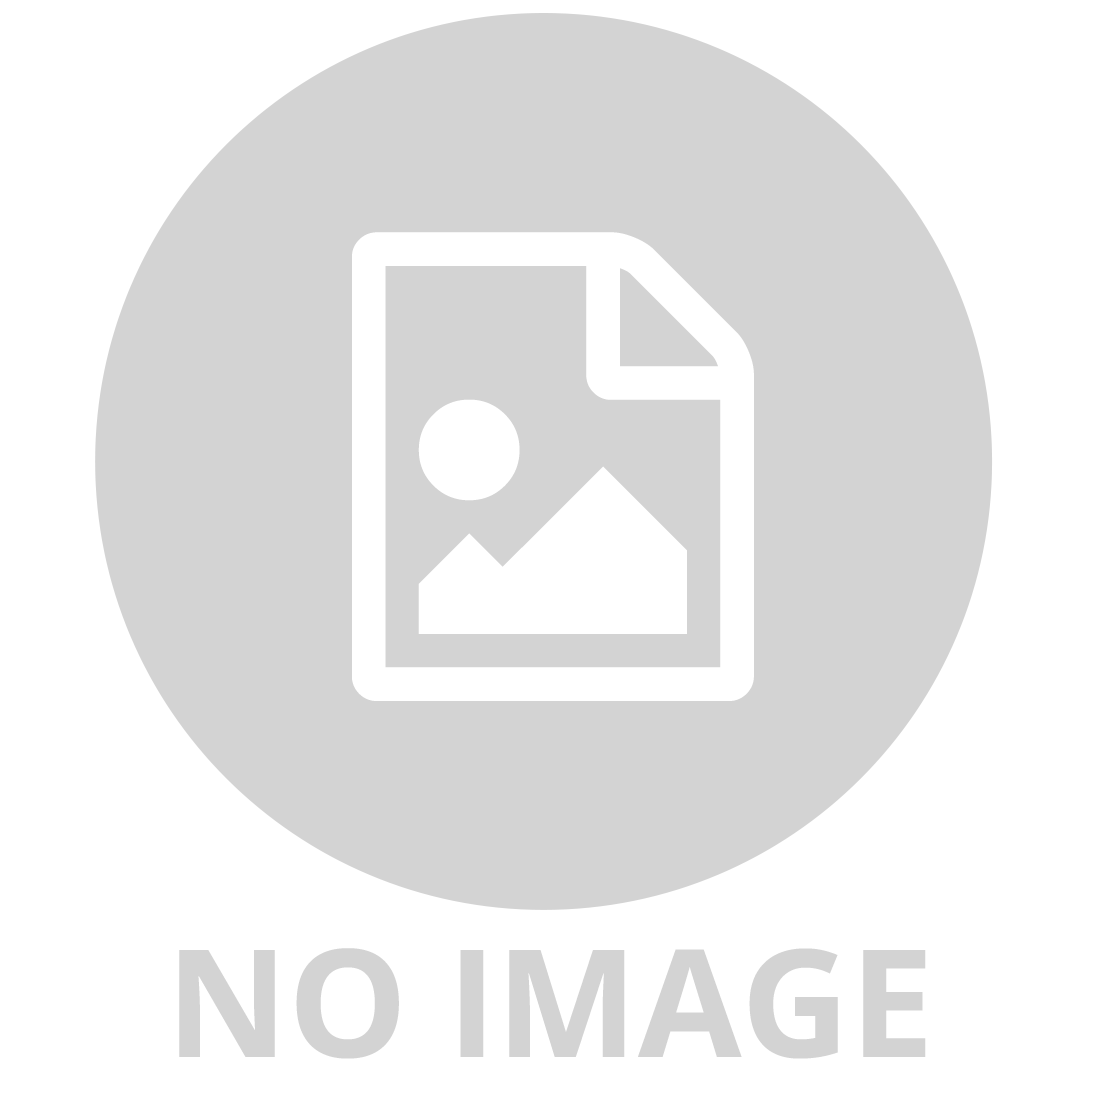 LEAP FROG LEAP PAD ULTIMATE WITH BONUS CASE